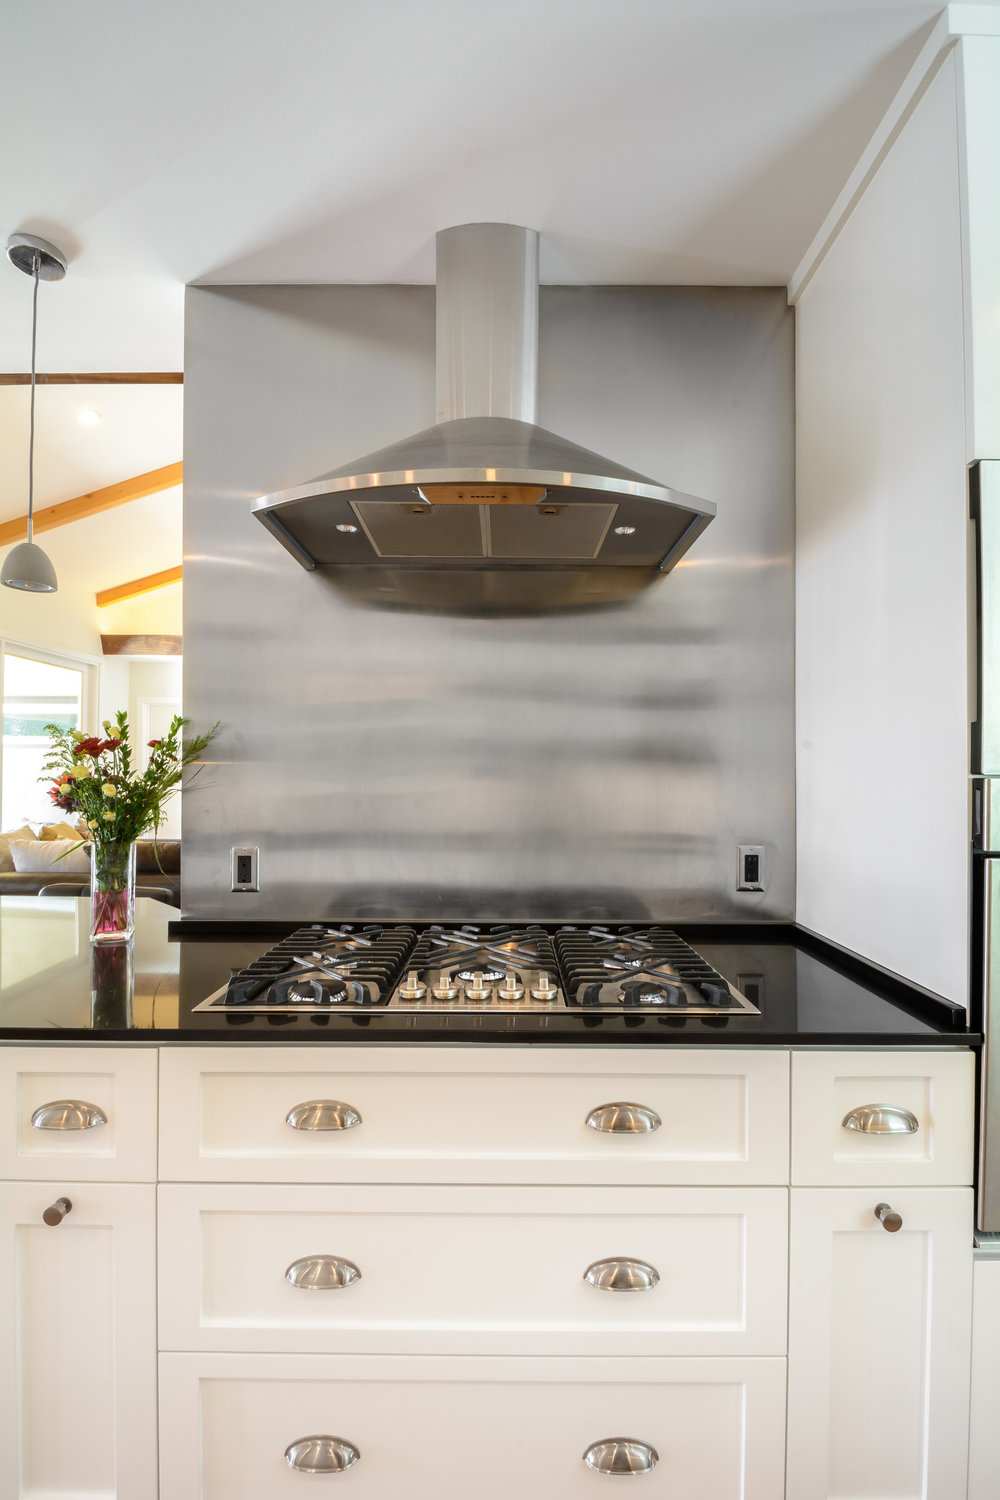 Mid-Century-Ranch-Kitchen-Black-Quartz-Counter-White-Shaker-Cabinet-Stainless-Steel-Backsplash-Hood-Cooktop.jpg